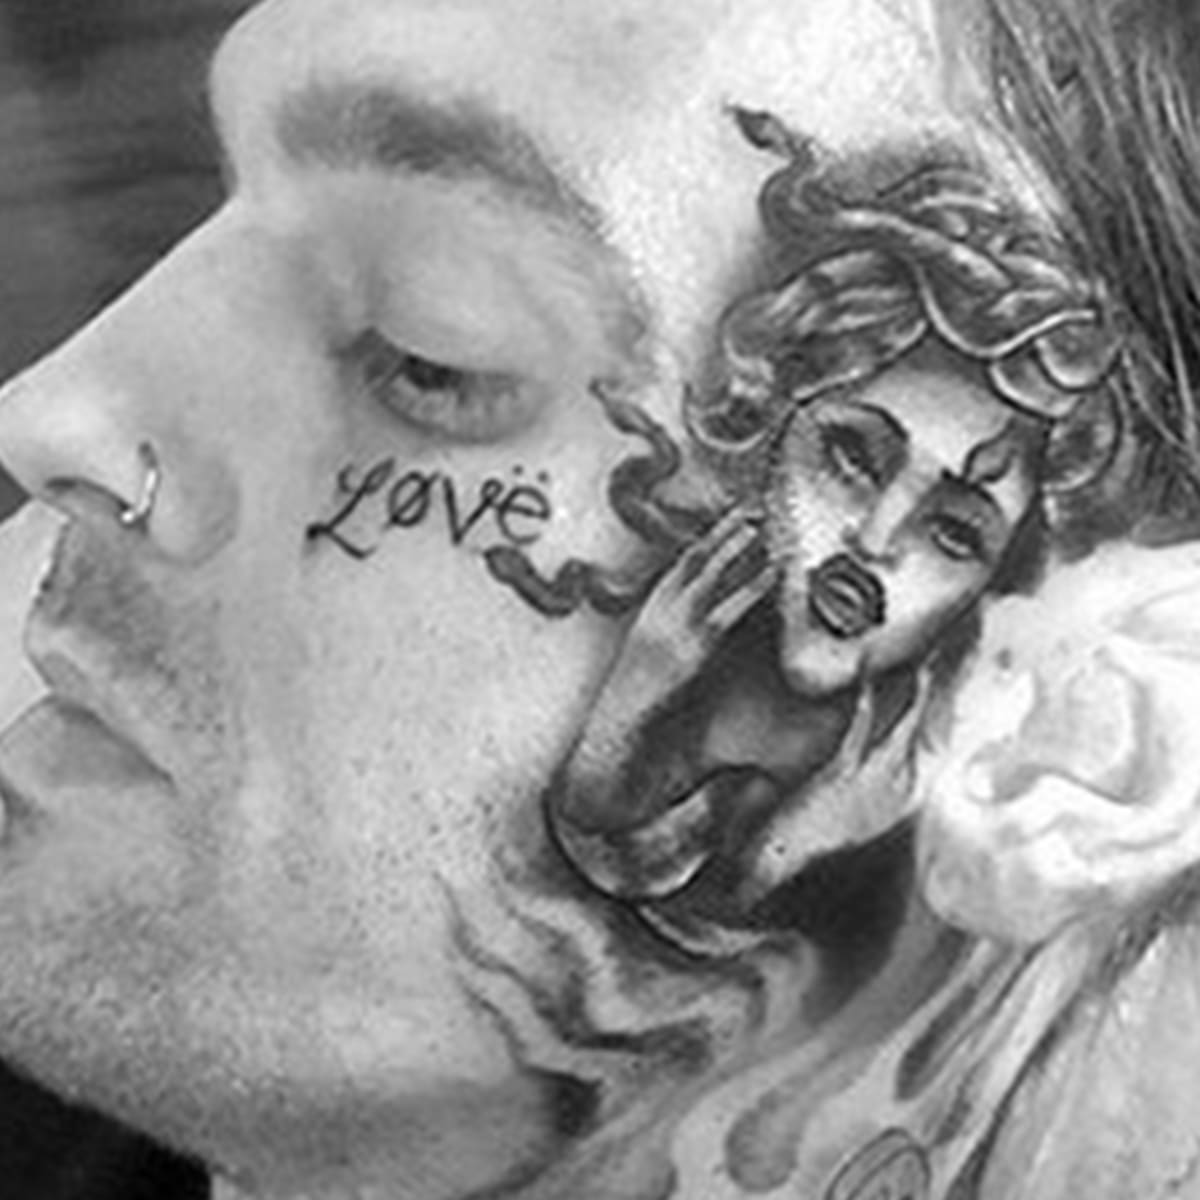 Aaron Carter Fixed His Face Tattoo Tattoo Ideas Artists And Models